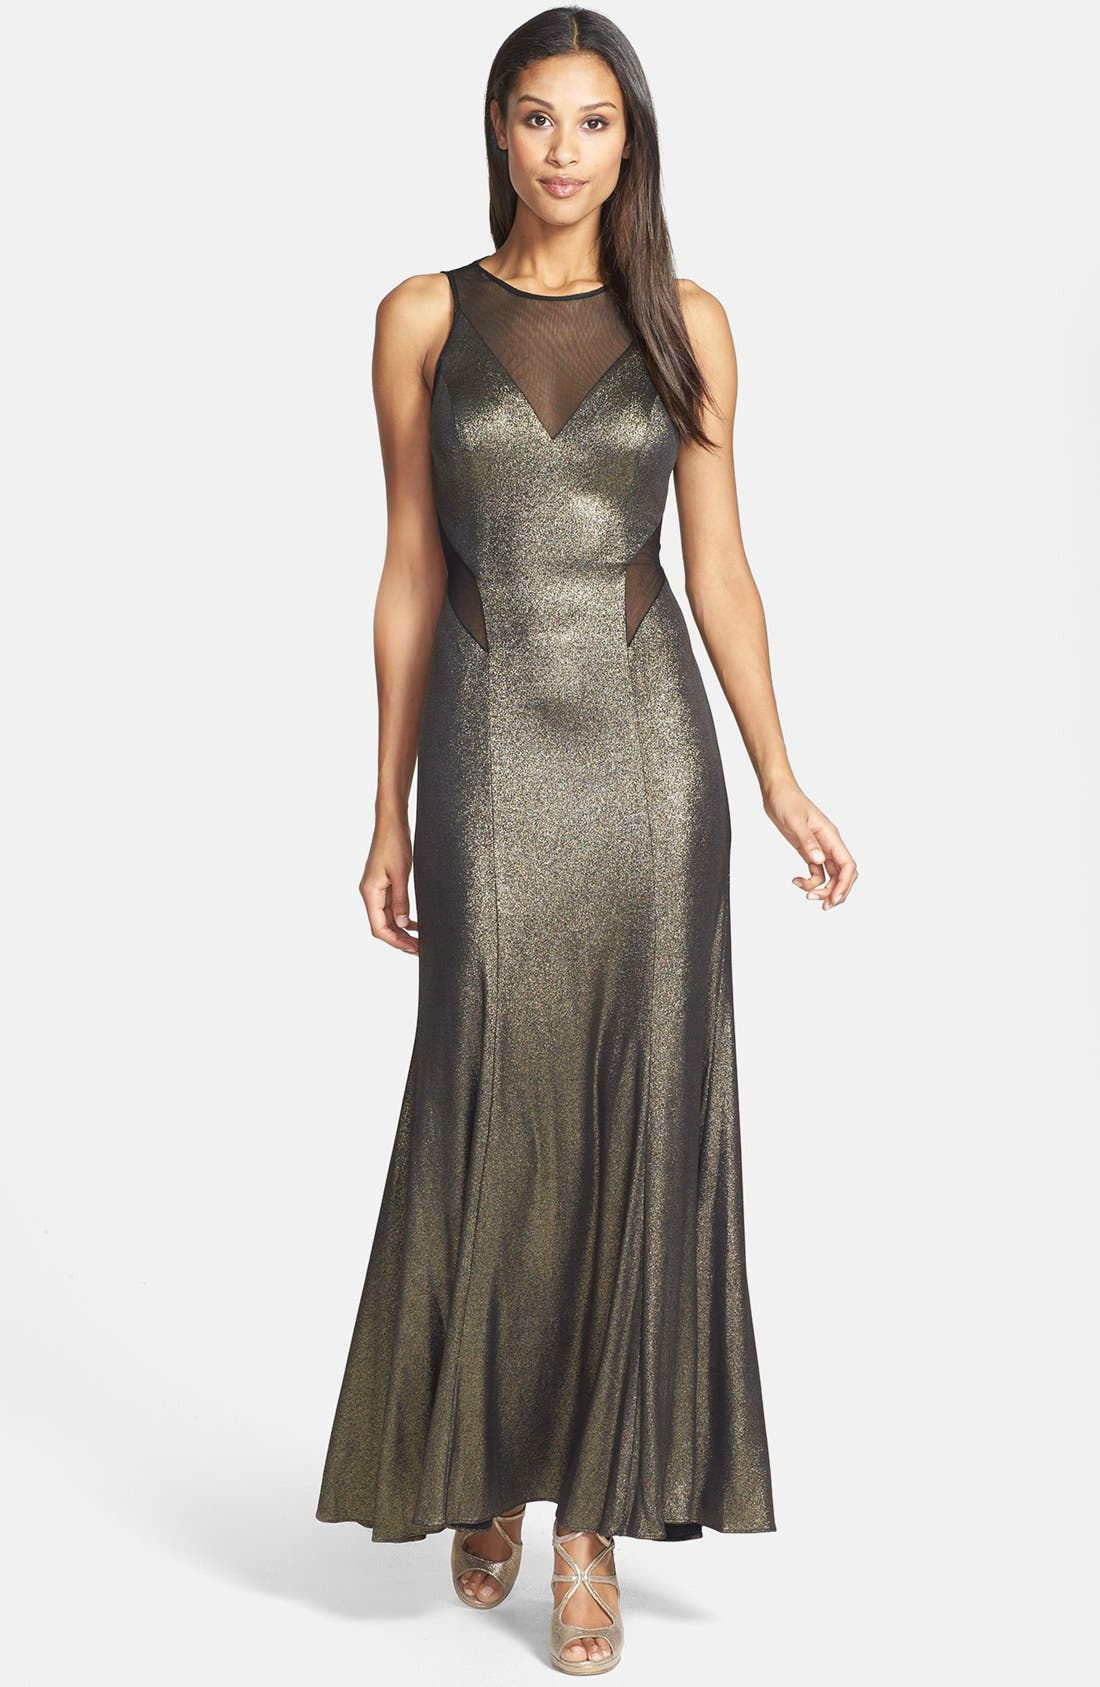 Main Image - Hailey by Adrianna Papell Illusion Cutout Metallic Gown